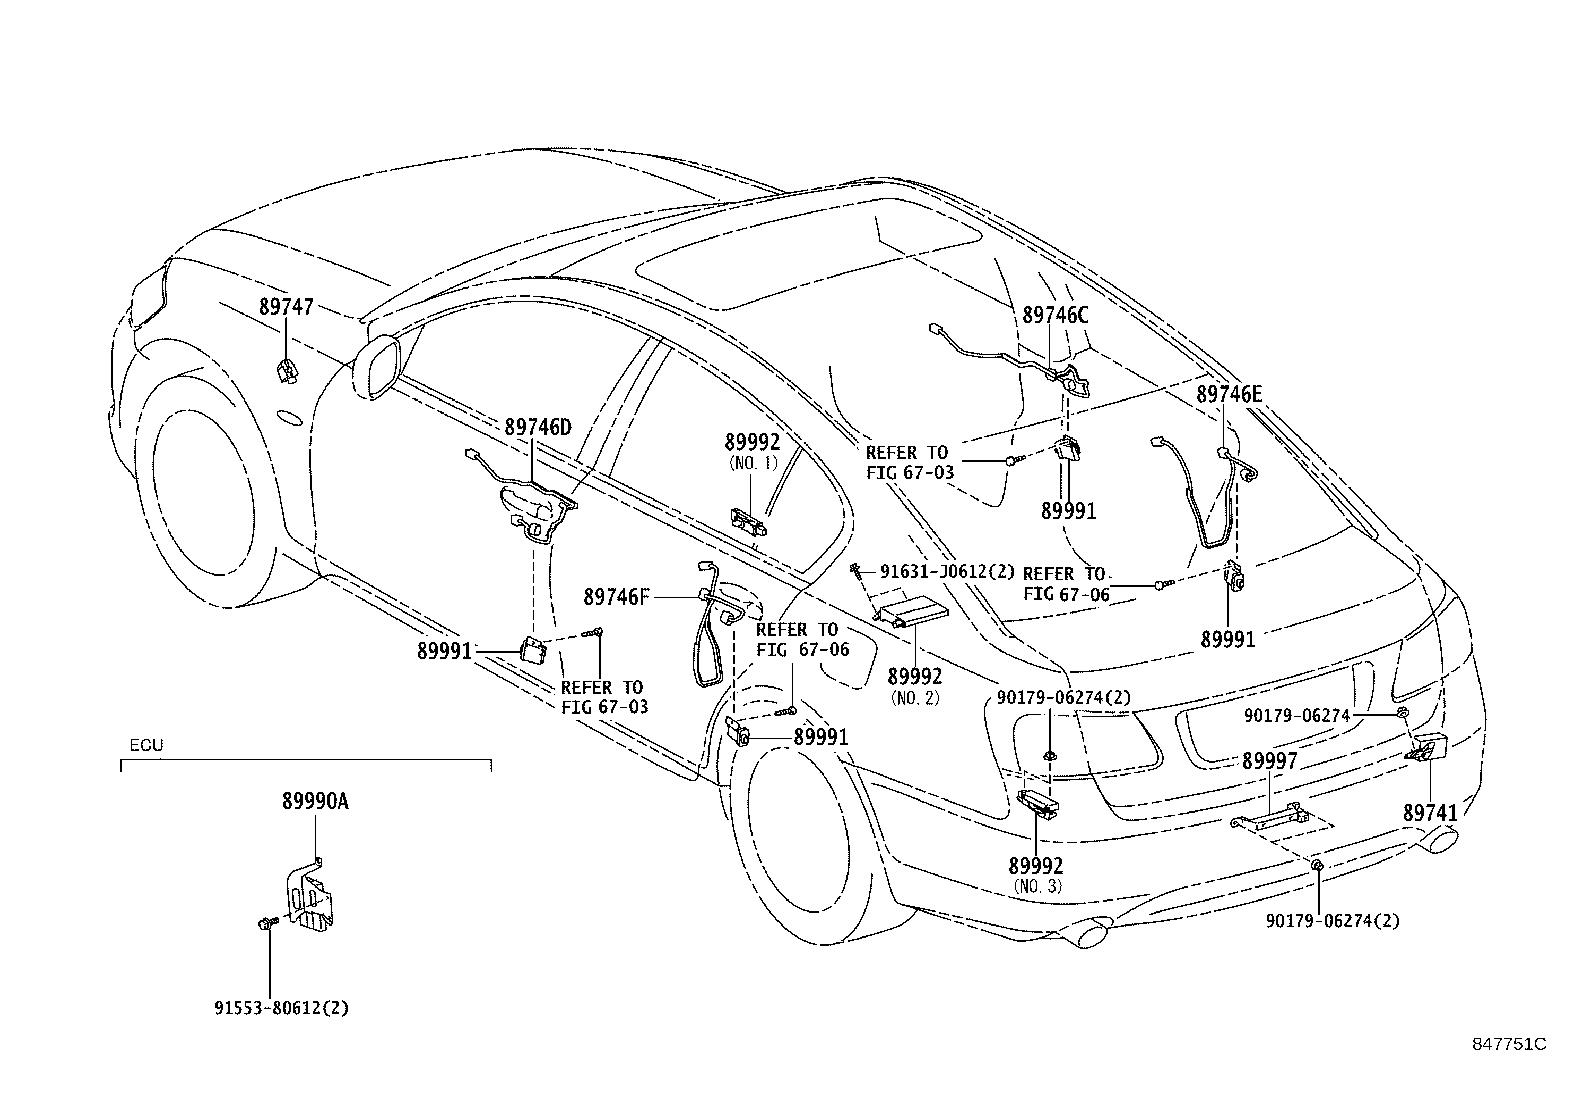 [DIAGRAM] 2007 Lexus Gs 450h Wiring Diagram FULL Version